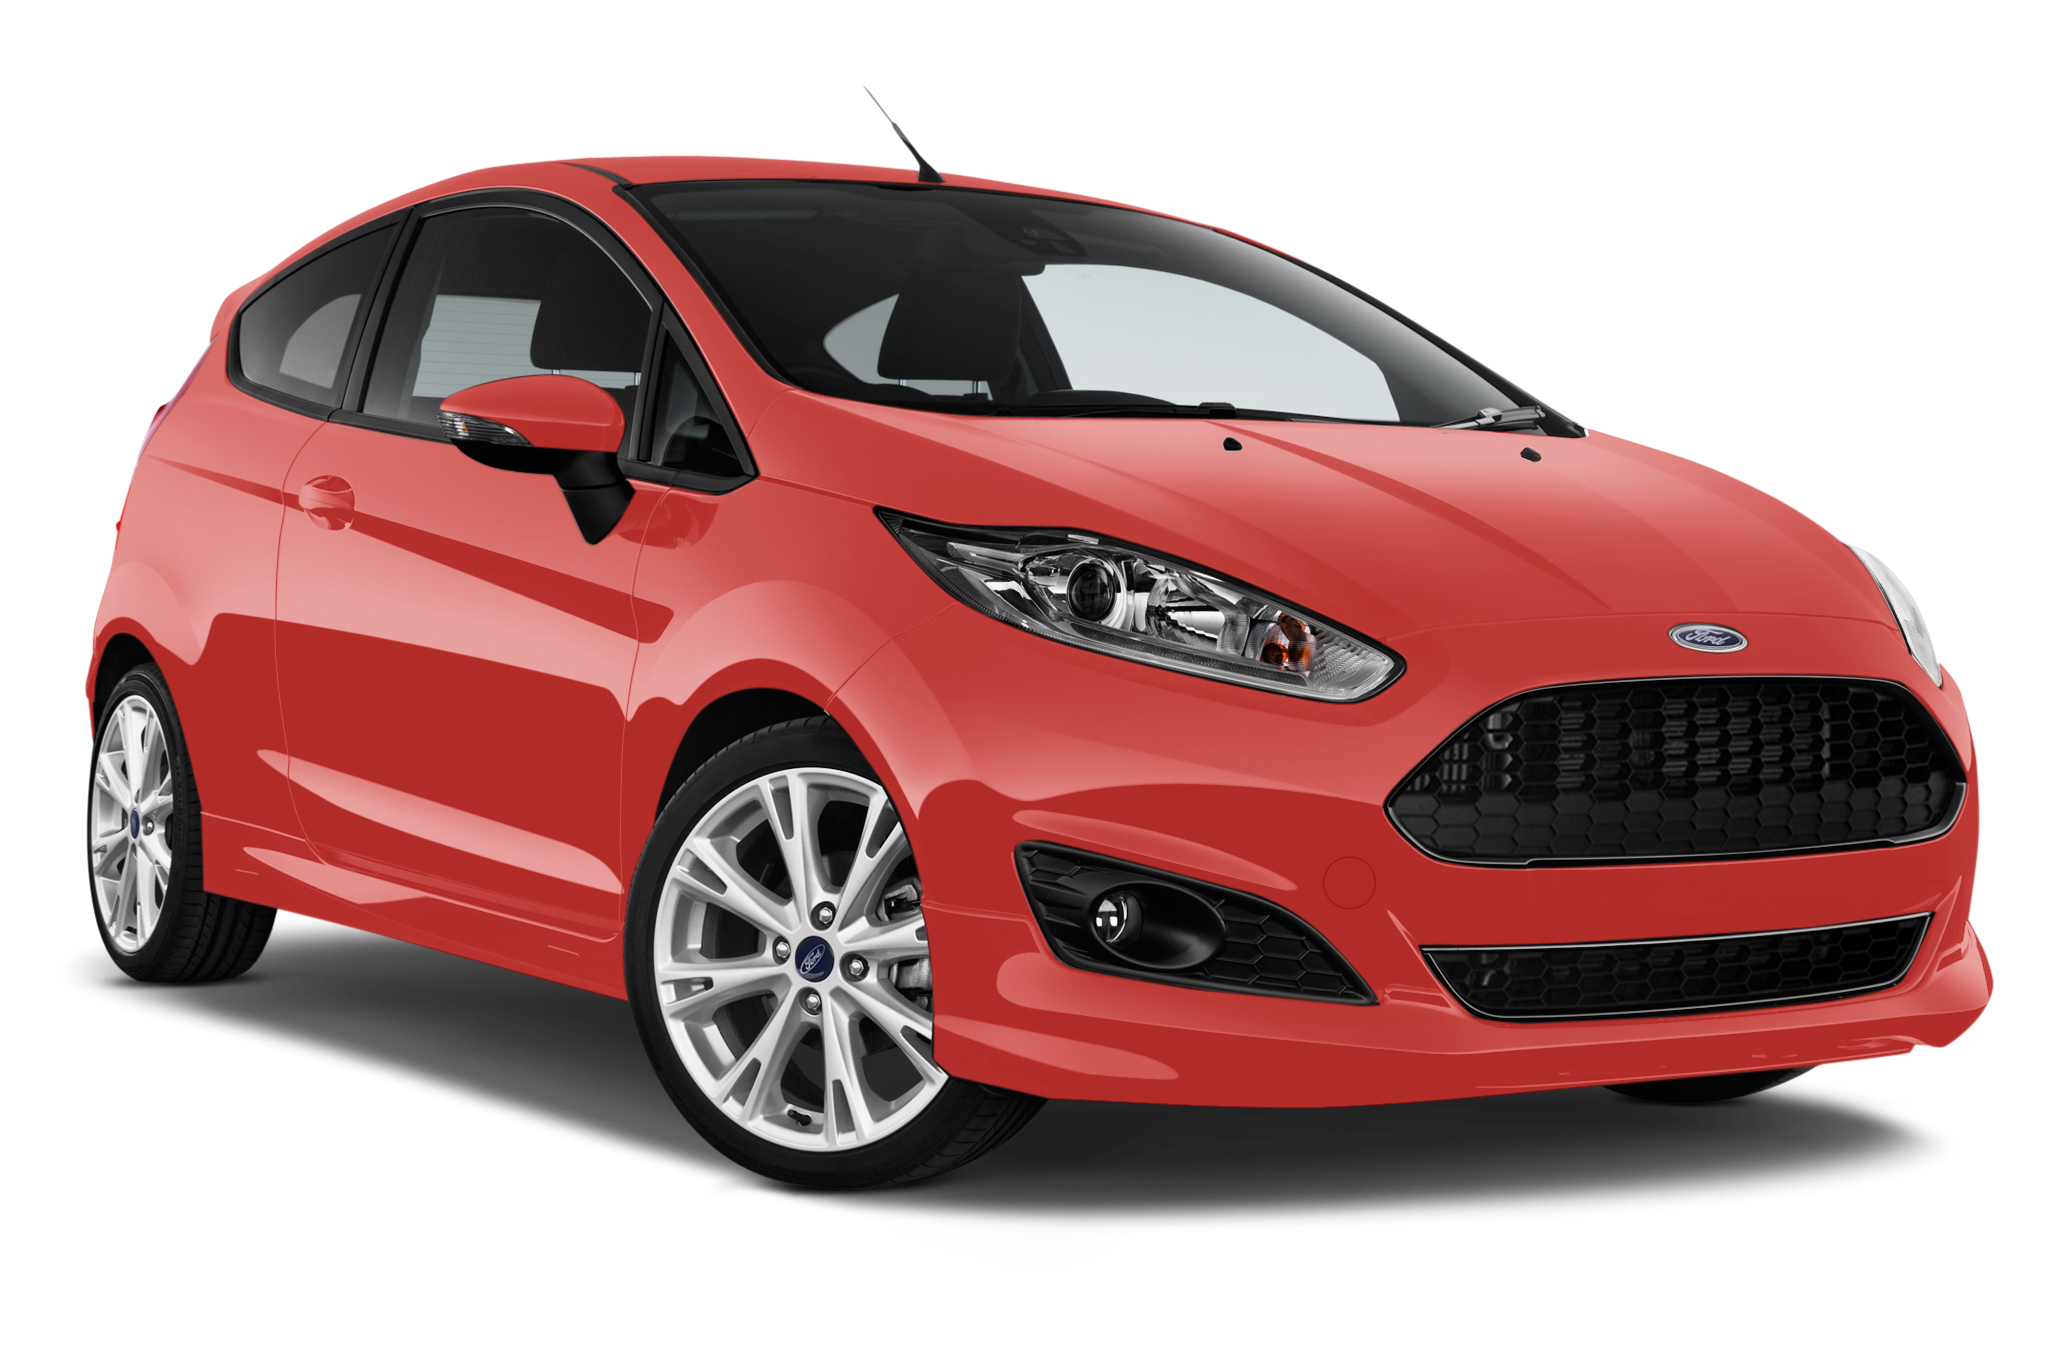 Ford Fiesta hatchback (2017 - ) review